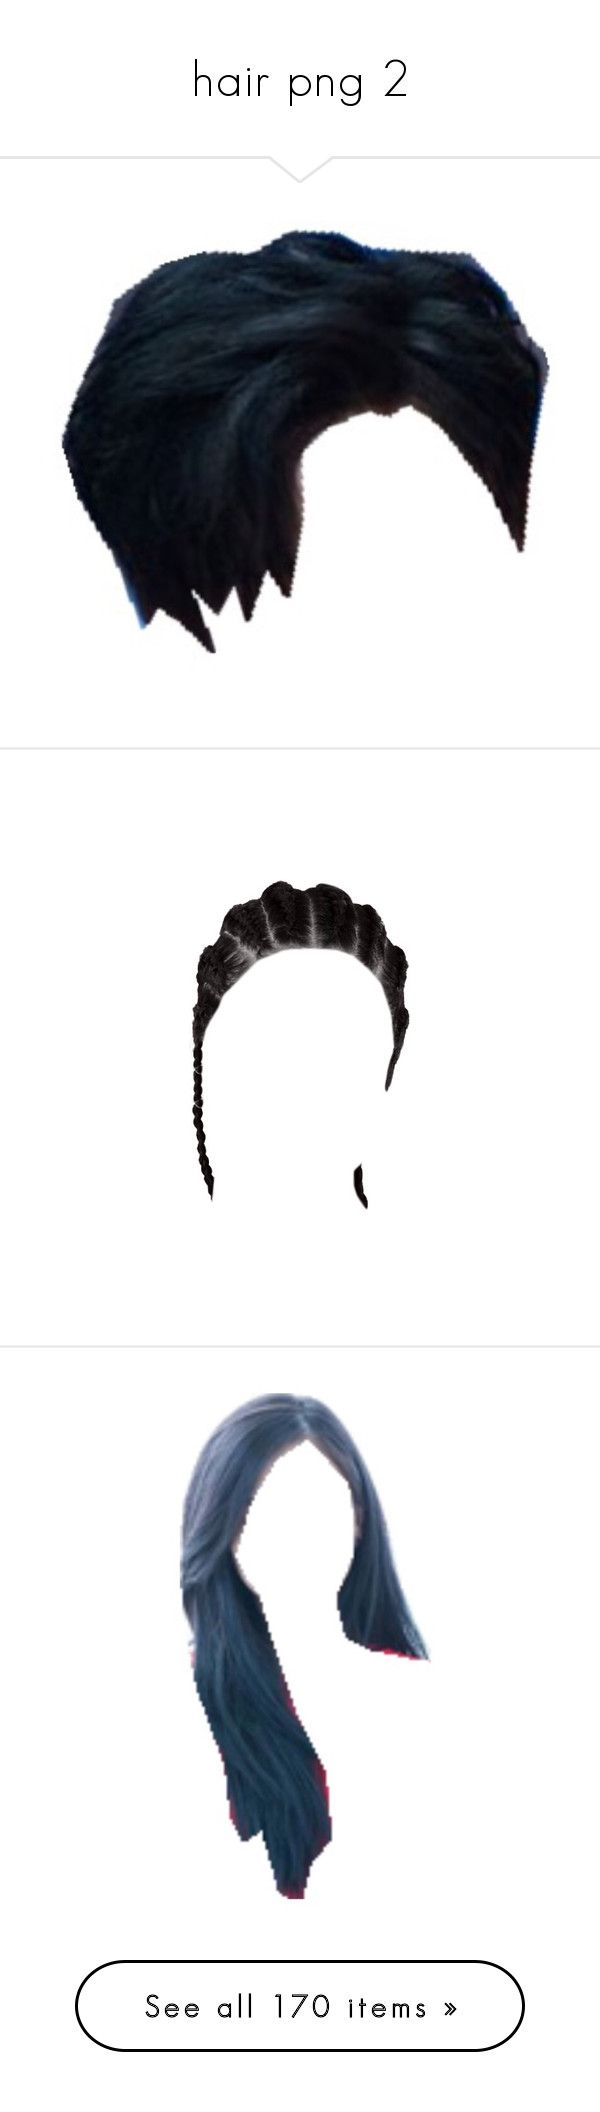 """""""hair png 2"""" by mingyv ❤ liked on Polyvore featuring hair, wigs, hairstyles, beauty products, haircare, hair styling tools, doll parts, doll hair, filler and beauty"""